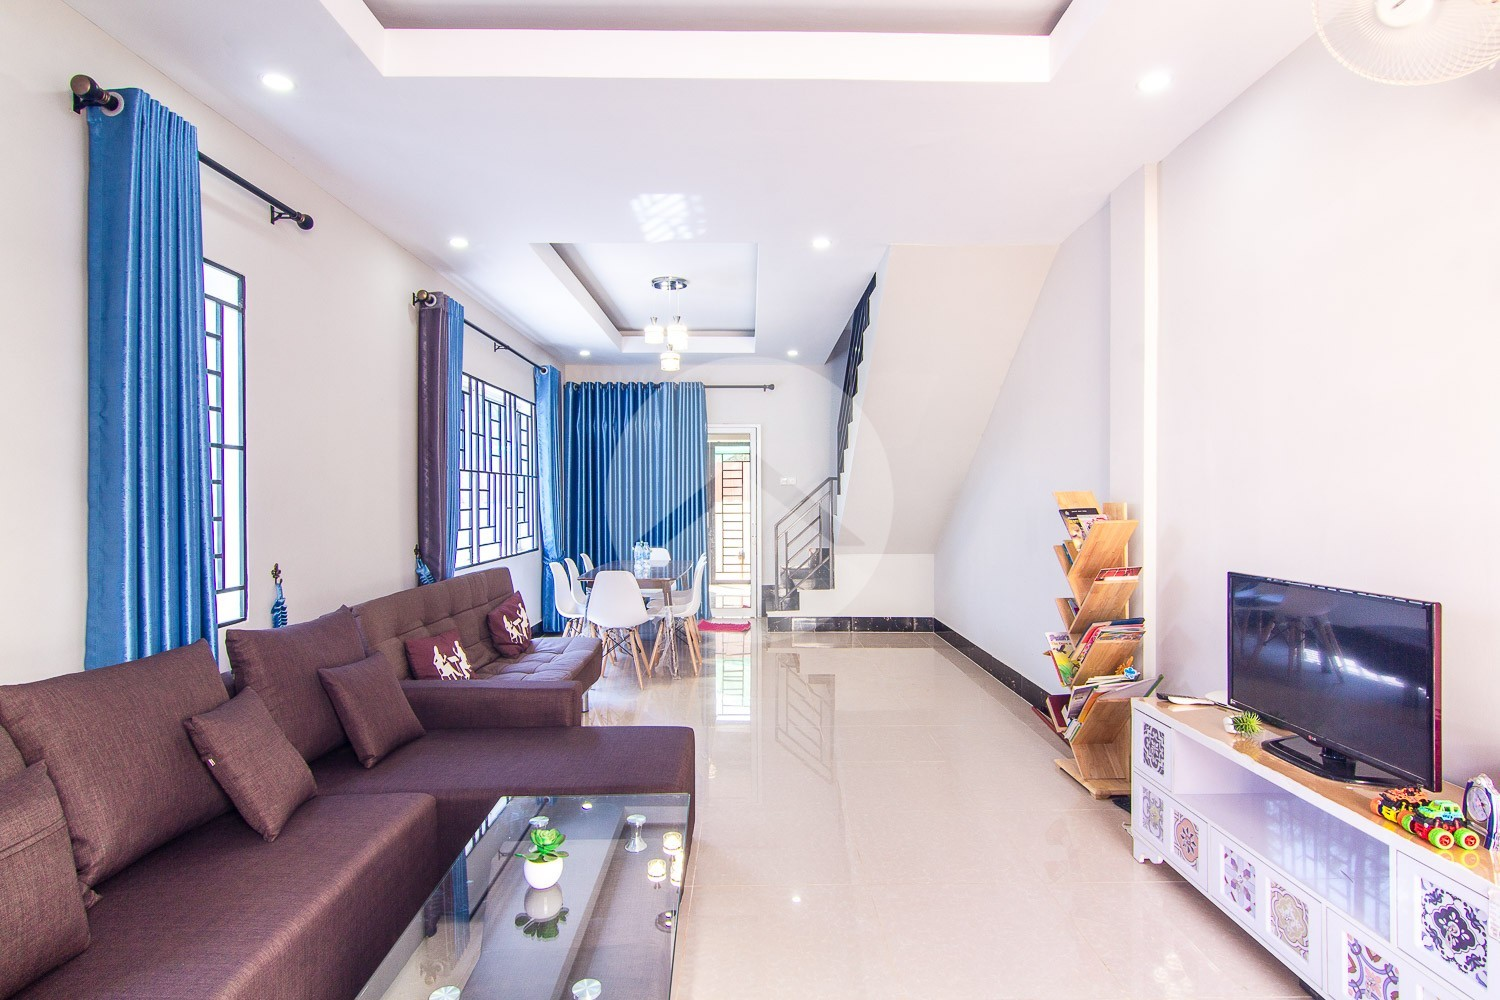 3 Bedroom Flat For Sale - Sala Kamreuk, Siem Reap